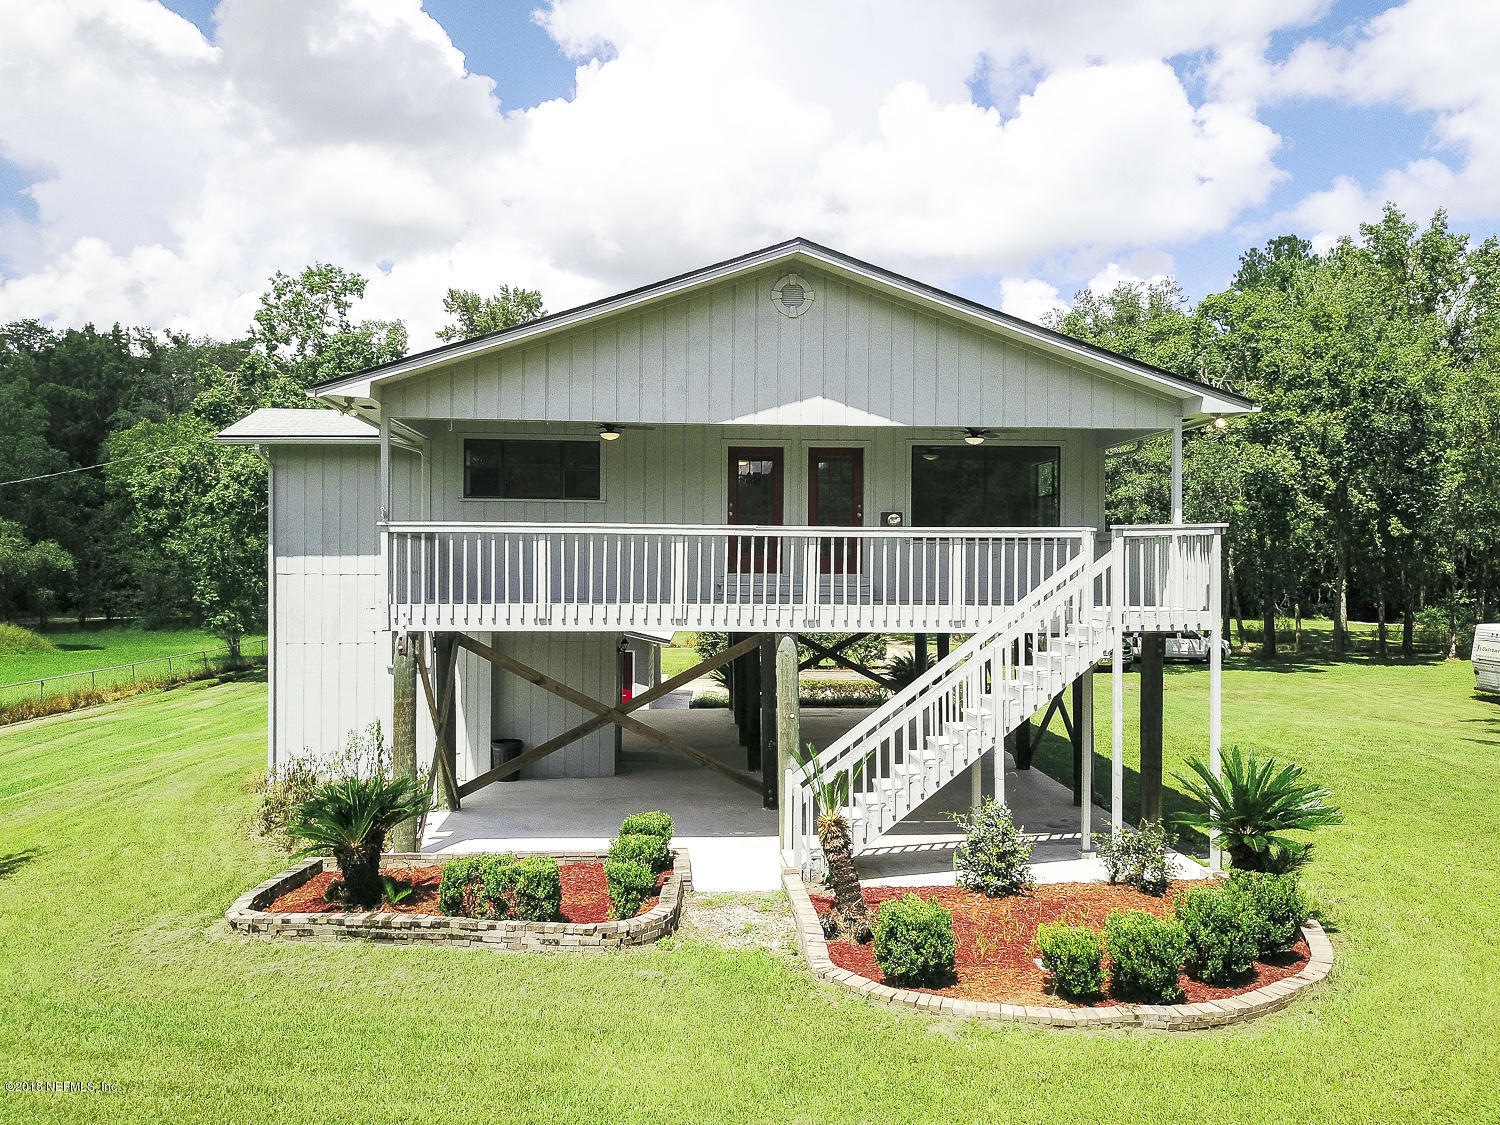 168 LEE, MIDDLEBURG, FLORIDA 32068, 2 Bedrooms Bedrooms, ,2 BathroomsBathrooms,Residential - single family,For sale,LEE,954539